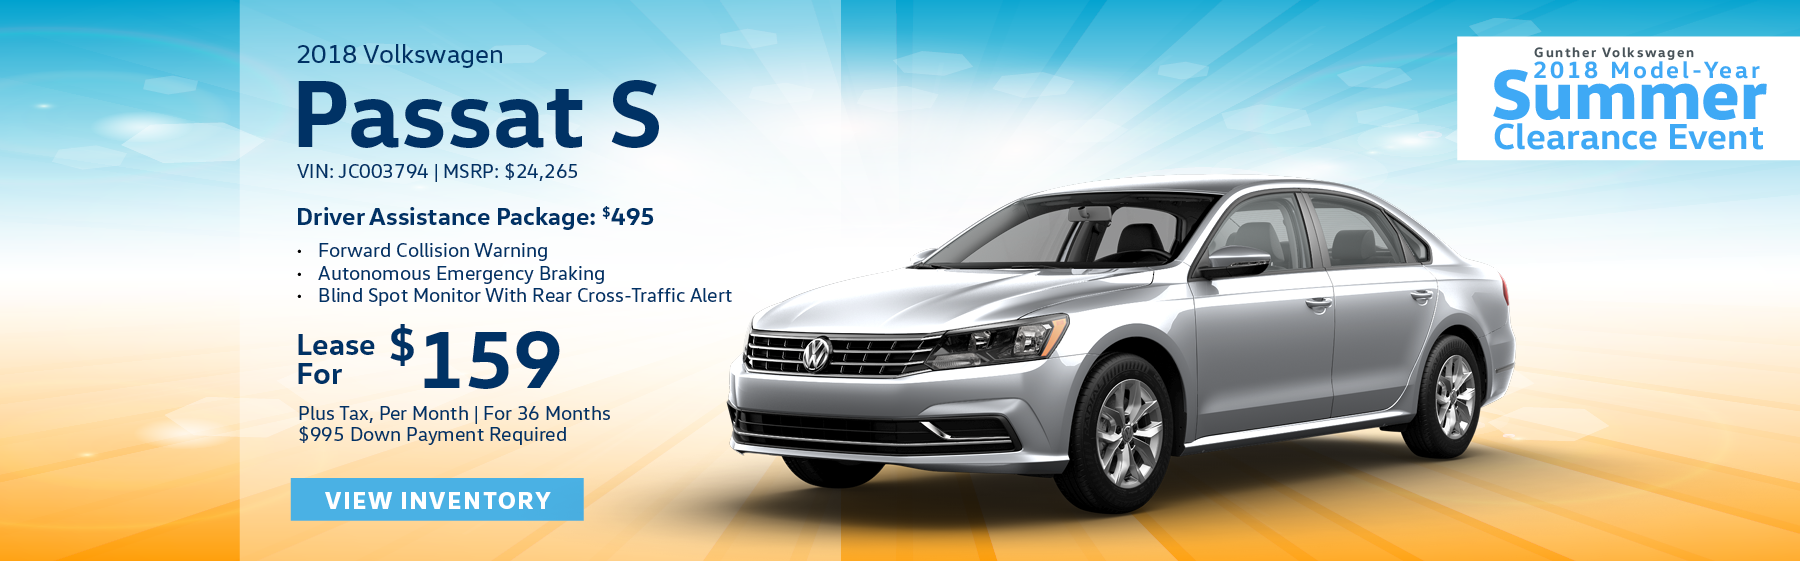 Lease the 2018 Volkswagen Passat S for $159 per month, plus tax for 36 months. Click here to view inventory.